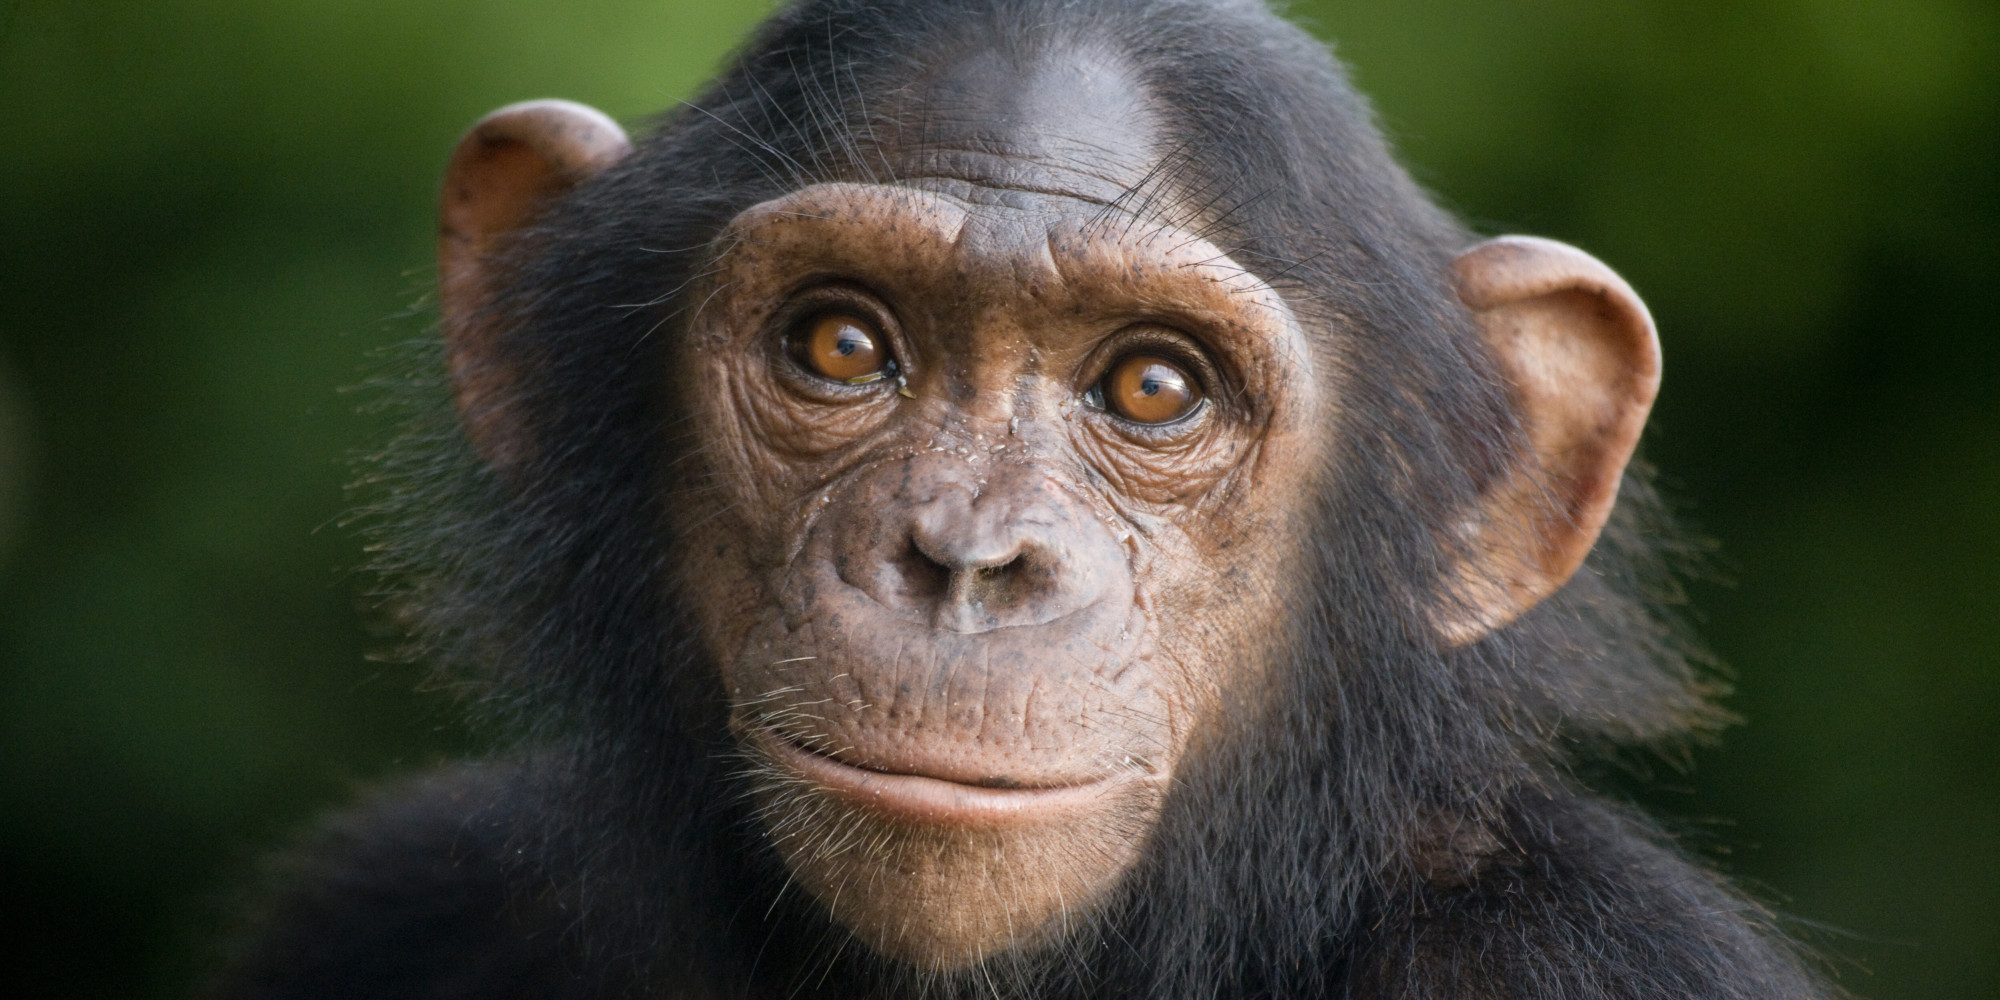 Hd wallpaper png - Gallery For Gt Chimpanzee Face